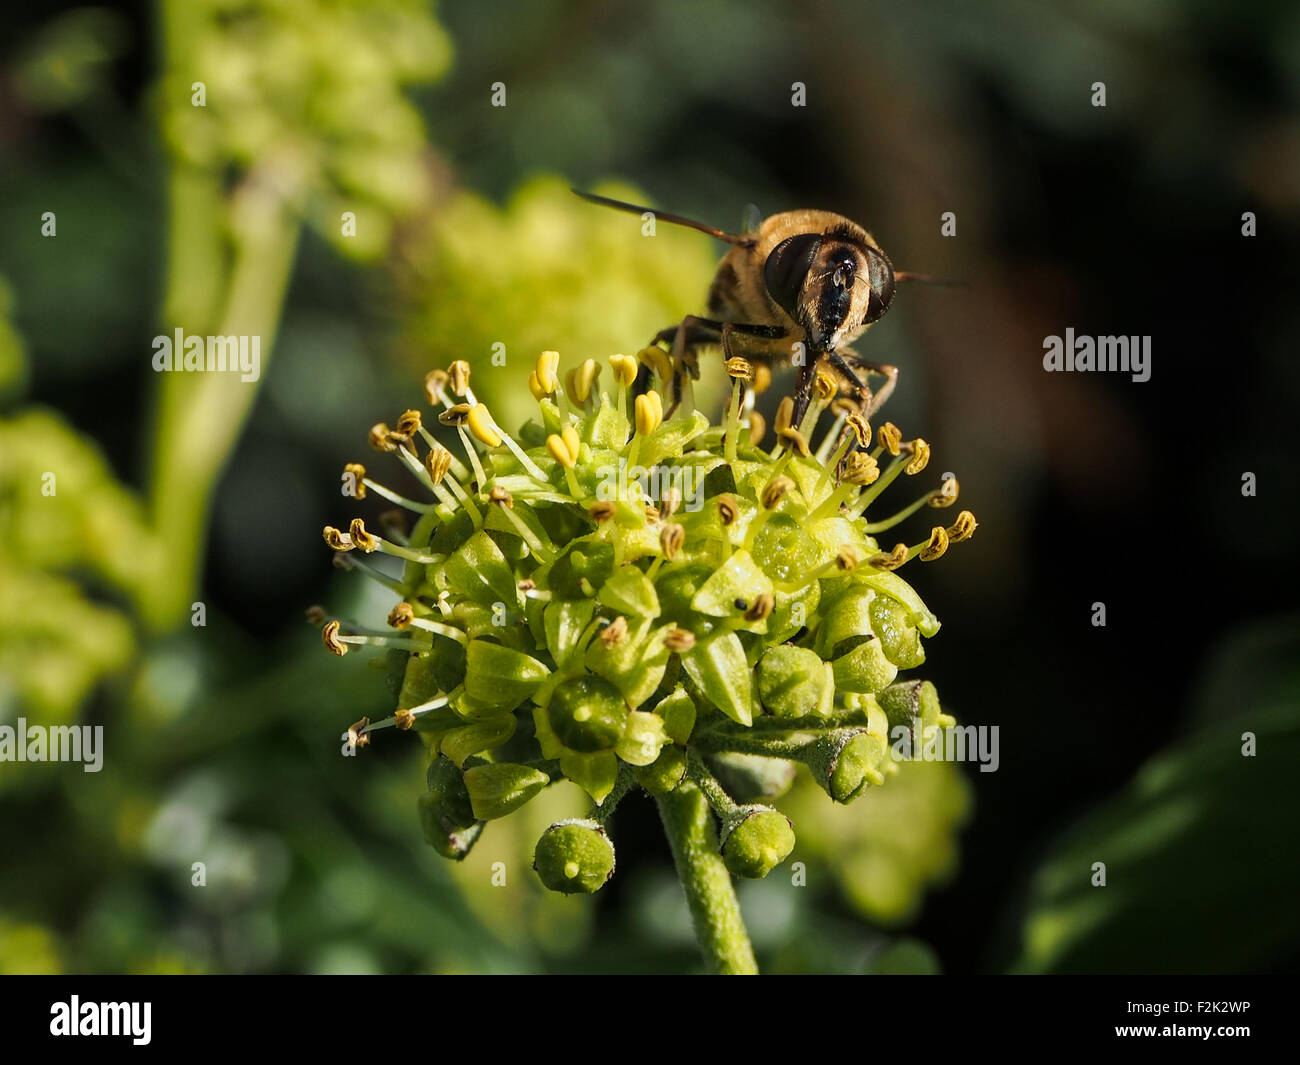 A honey bee nectaring on a plant in an English Garden - Stock Image